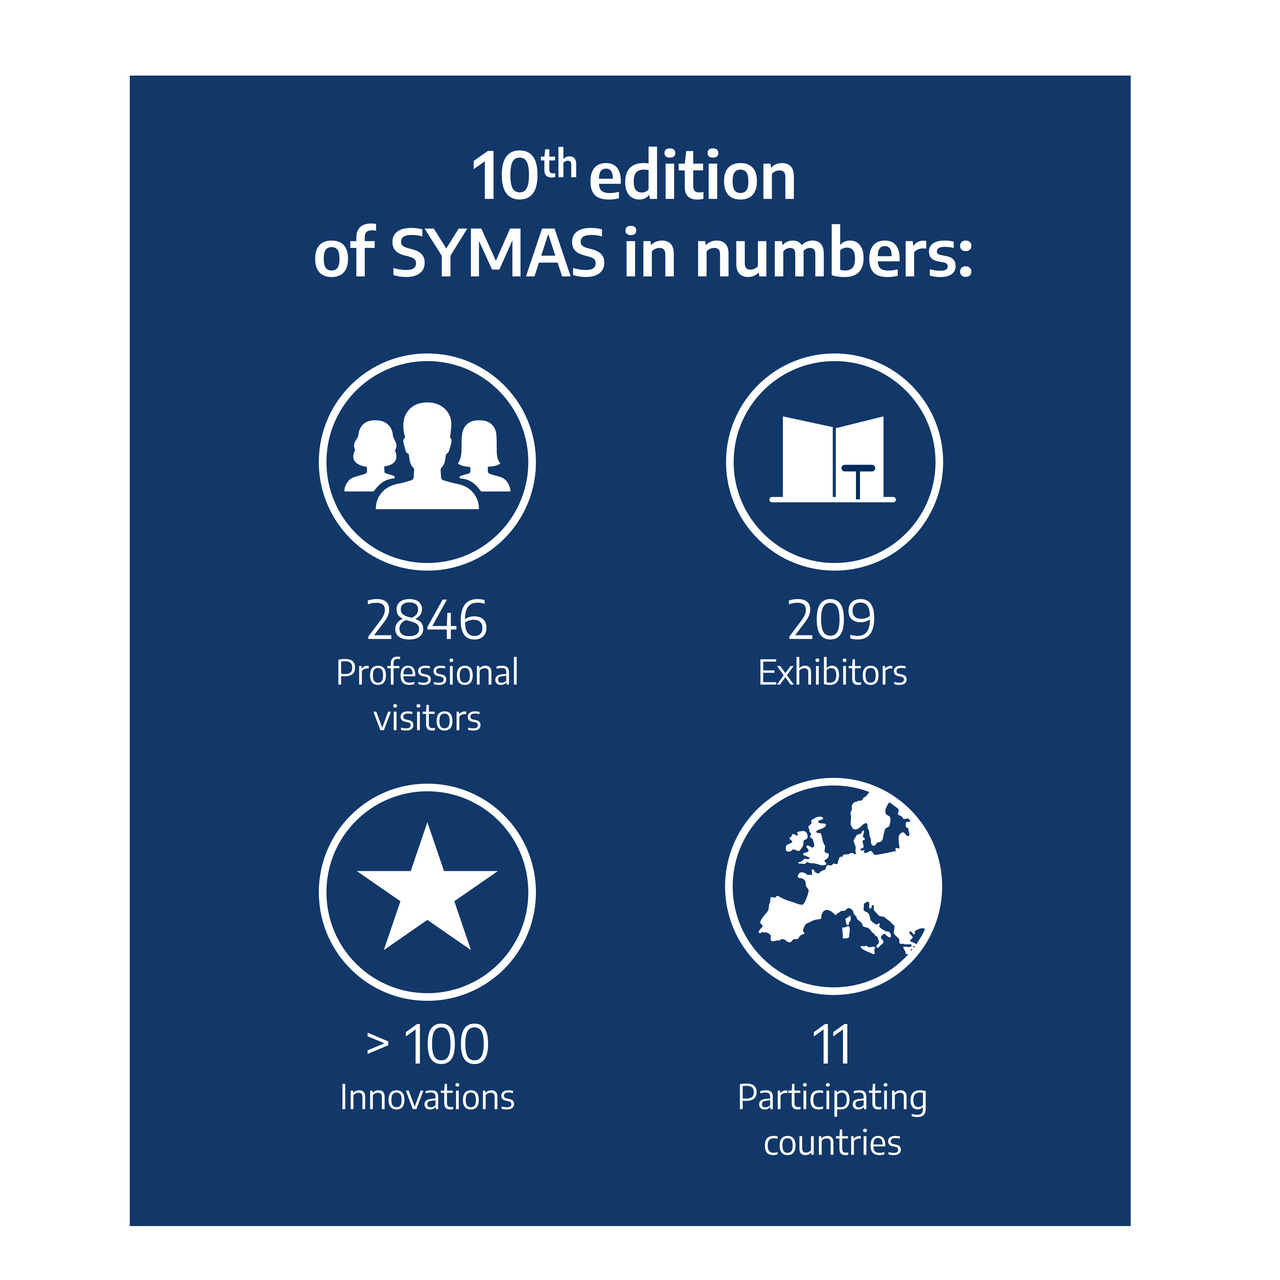 SYMAS in numbers